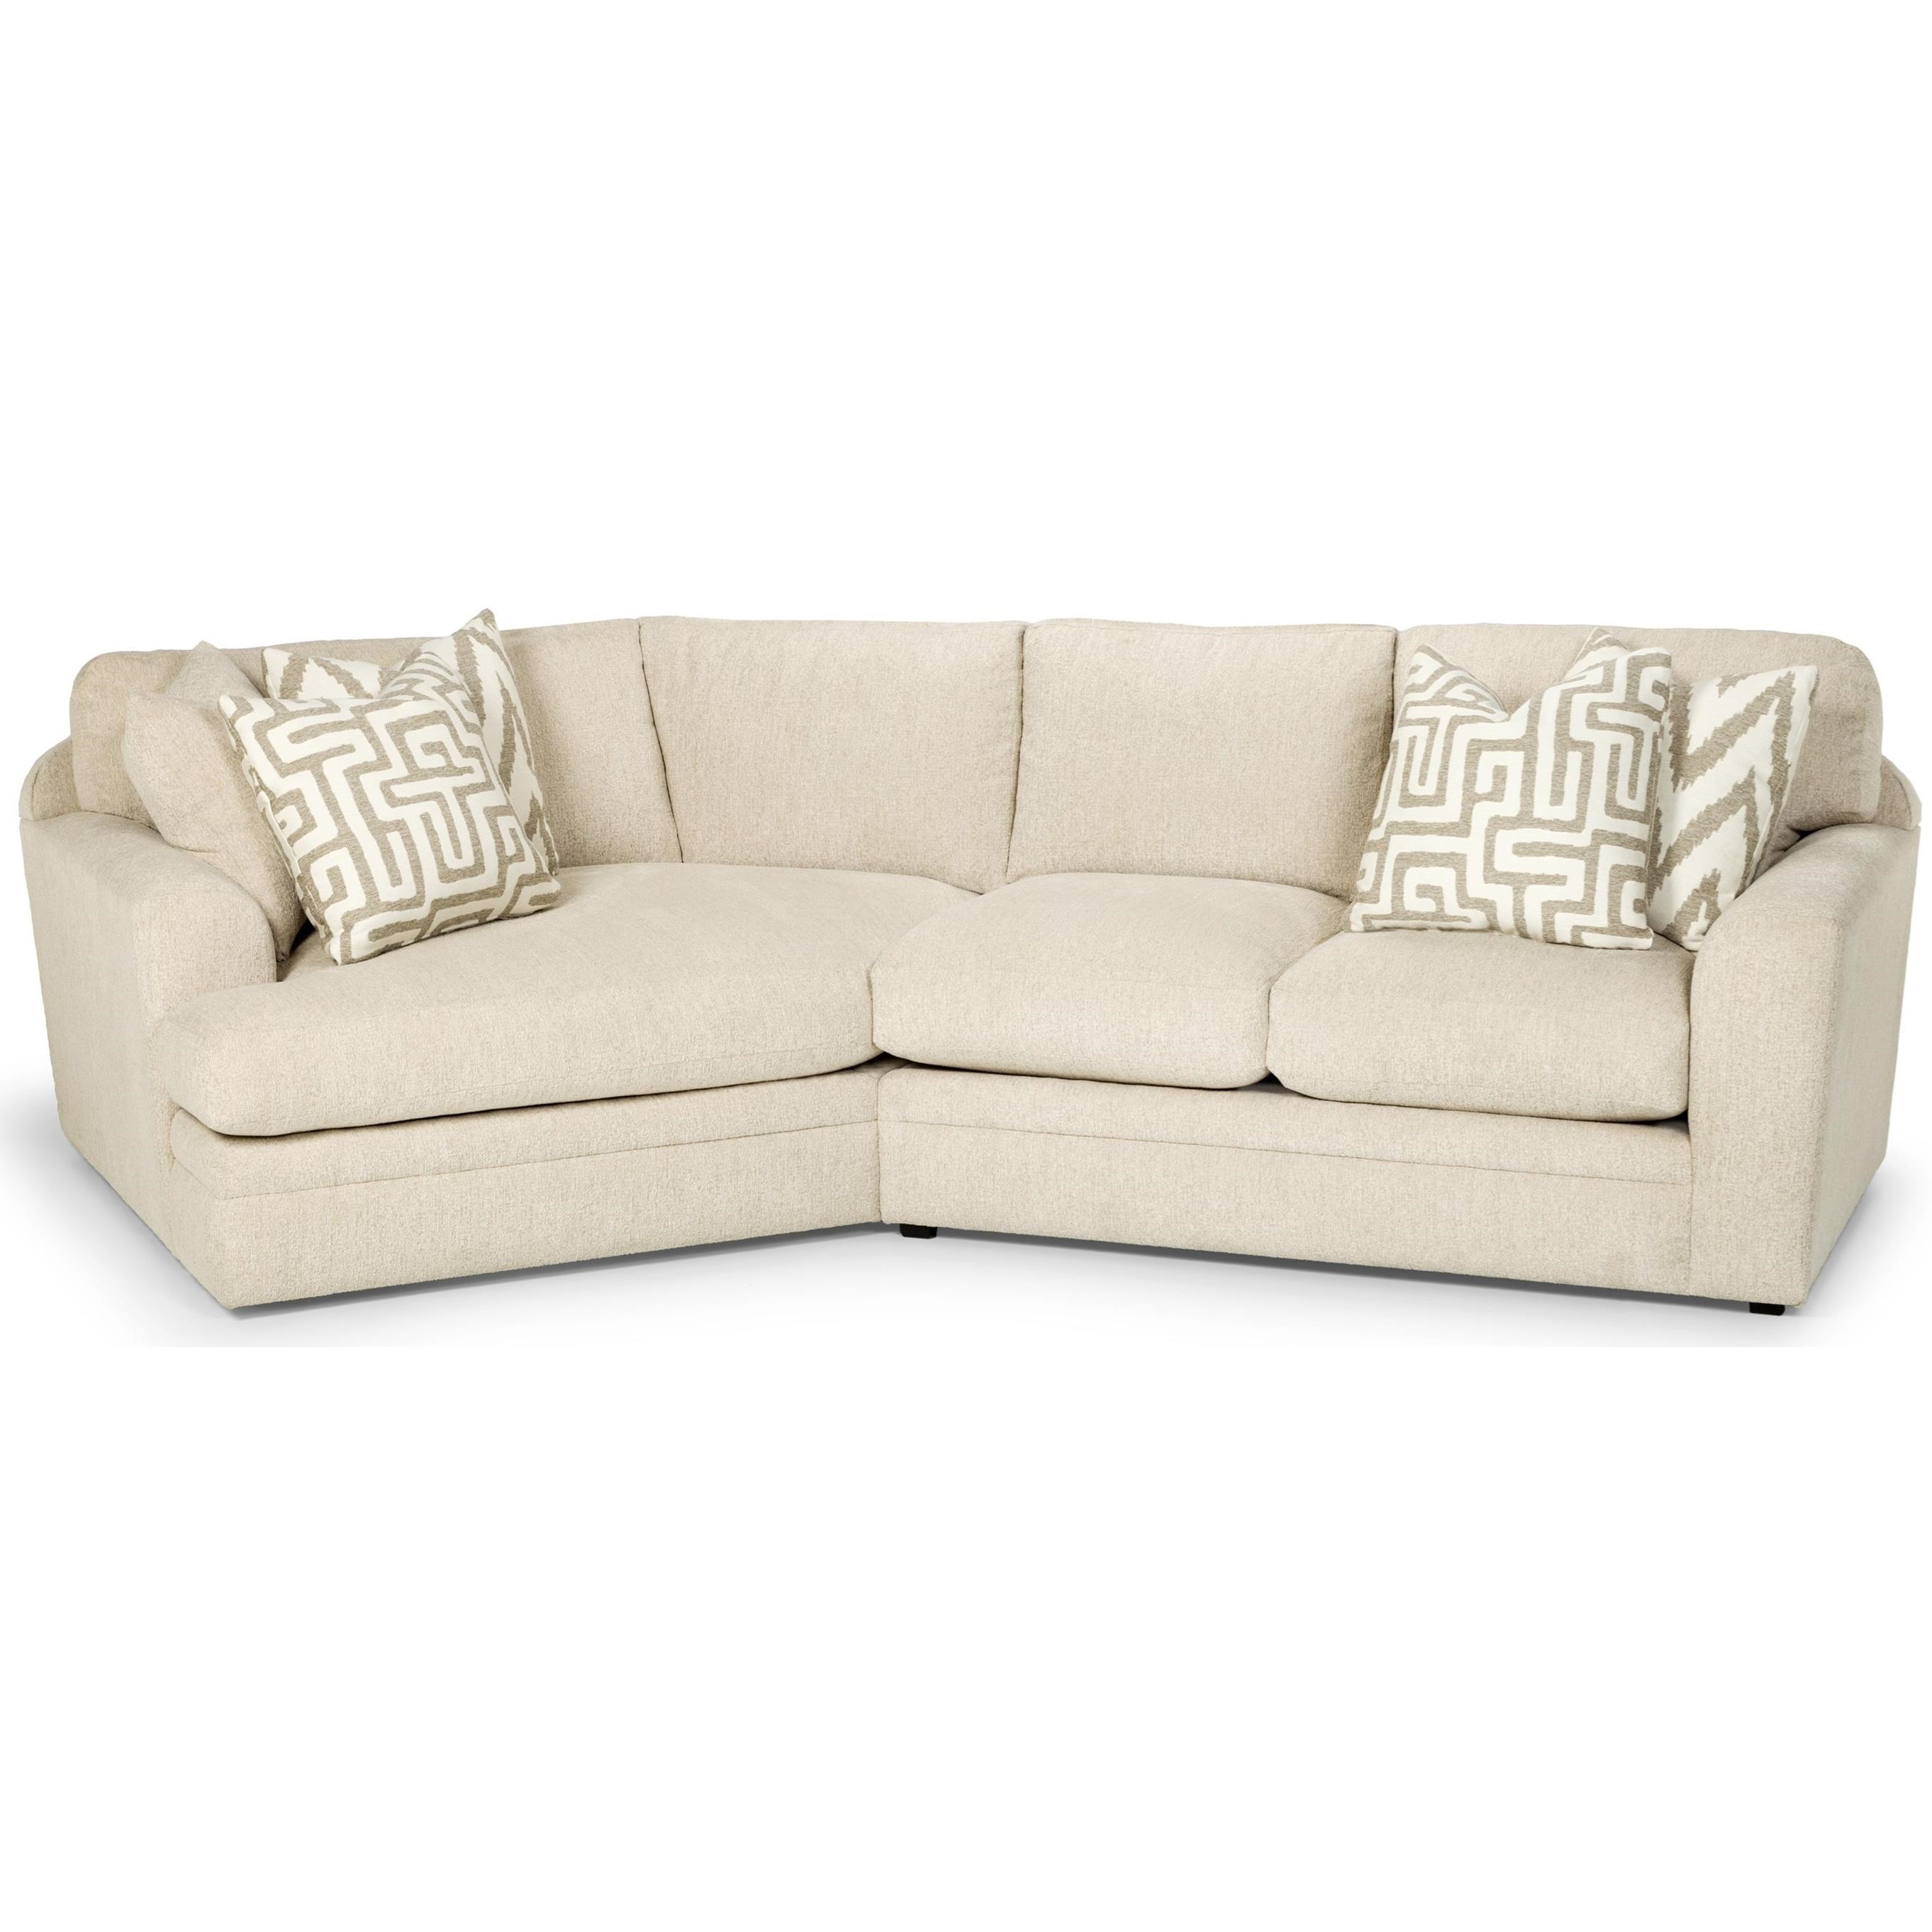 Two Piece Sectional Sofa w/ LAF Cuddler